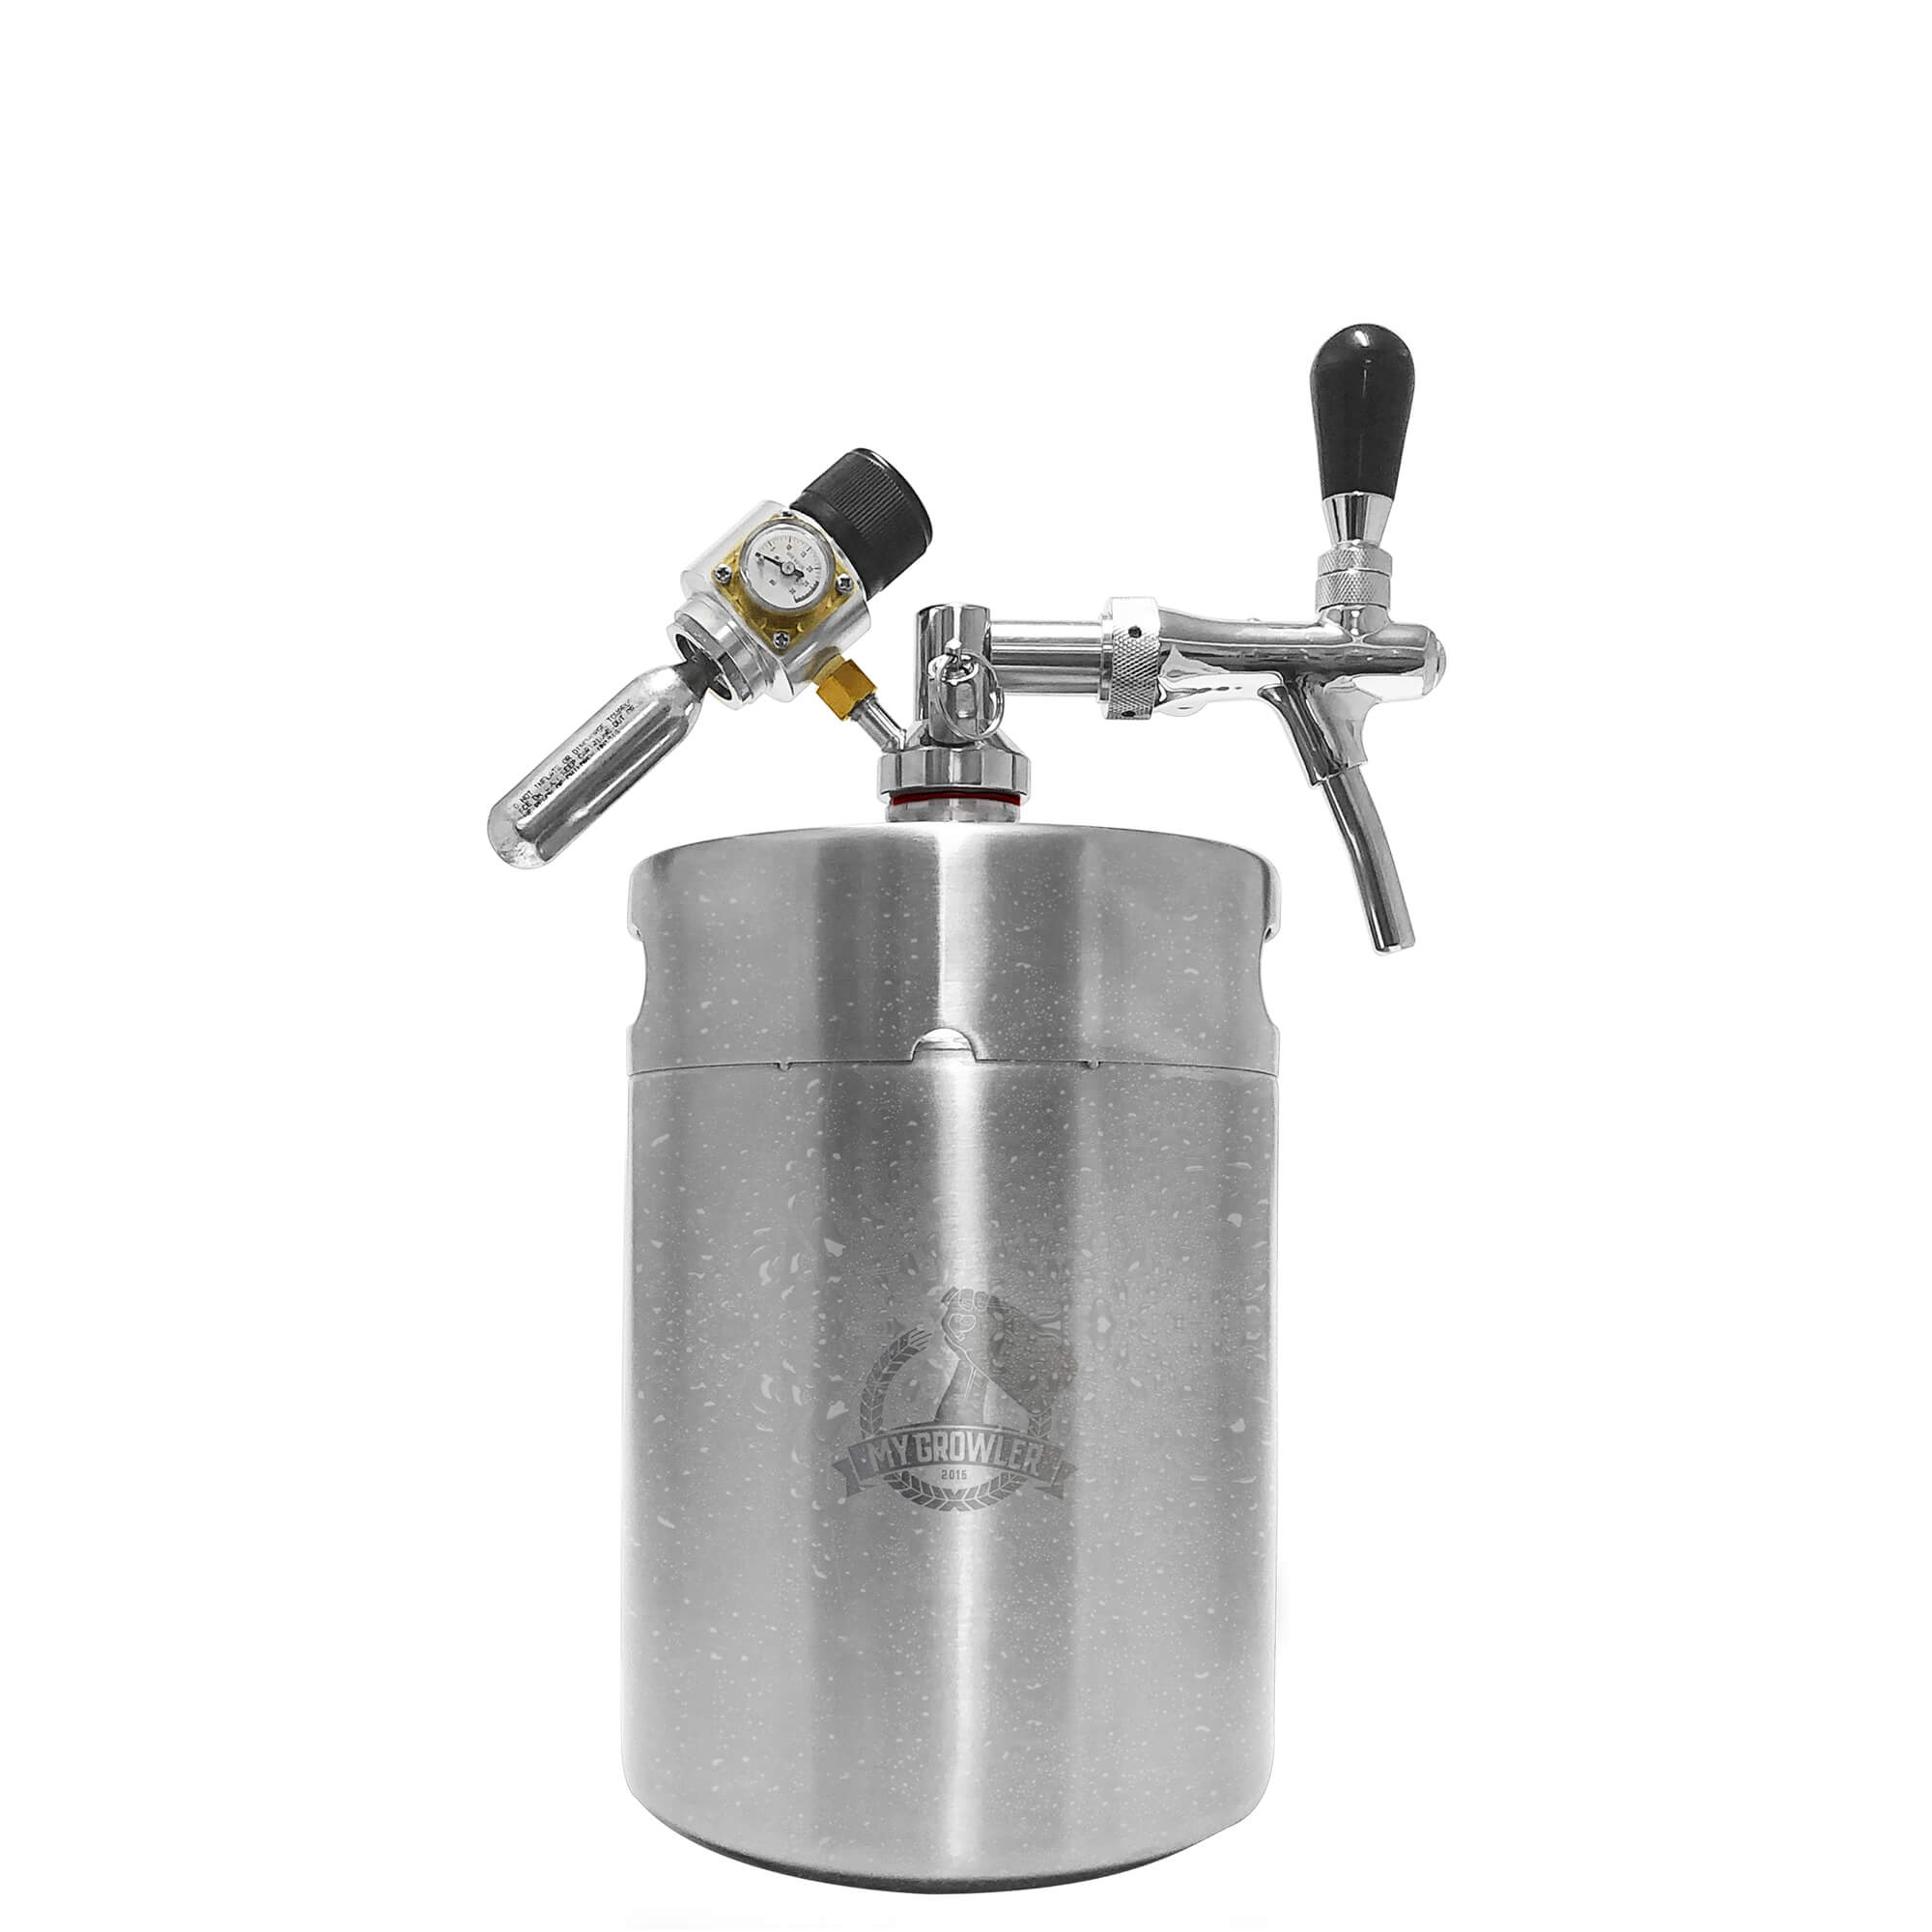 Kit My Keg, Growler Inox 5L com torneira italiana Premium